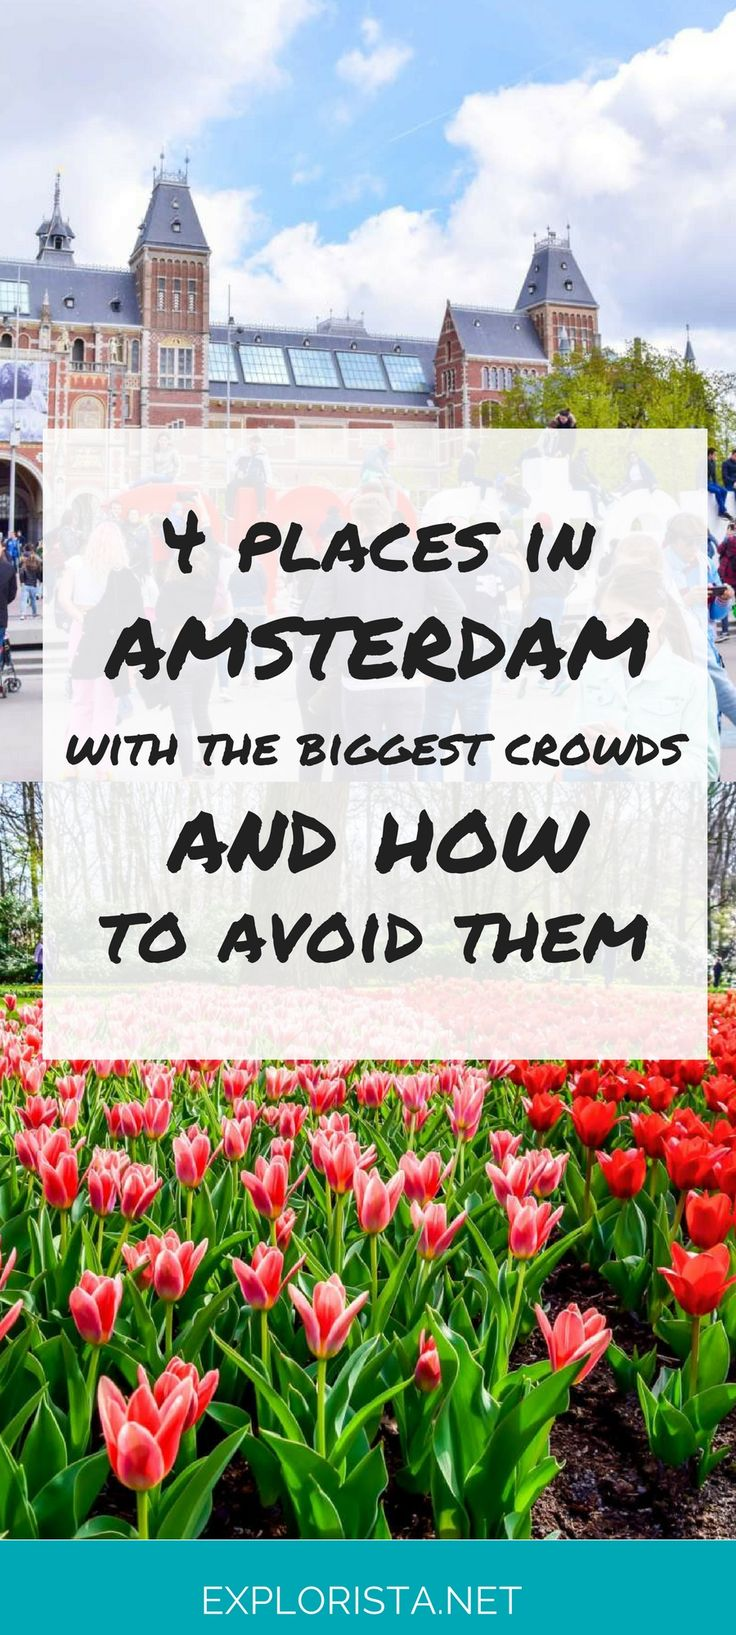 Amsterdam is one of the most popular cities to visit in Europe! This means its biggest attractions can get crowded and the lines very long. Here are some tips on avoiding the lines, so you don't have to wait forever to see your favorite places!